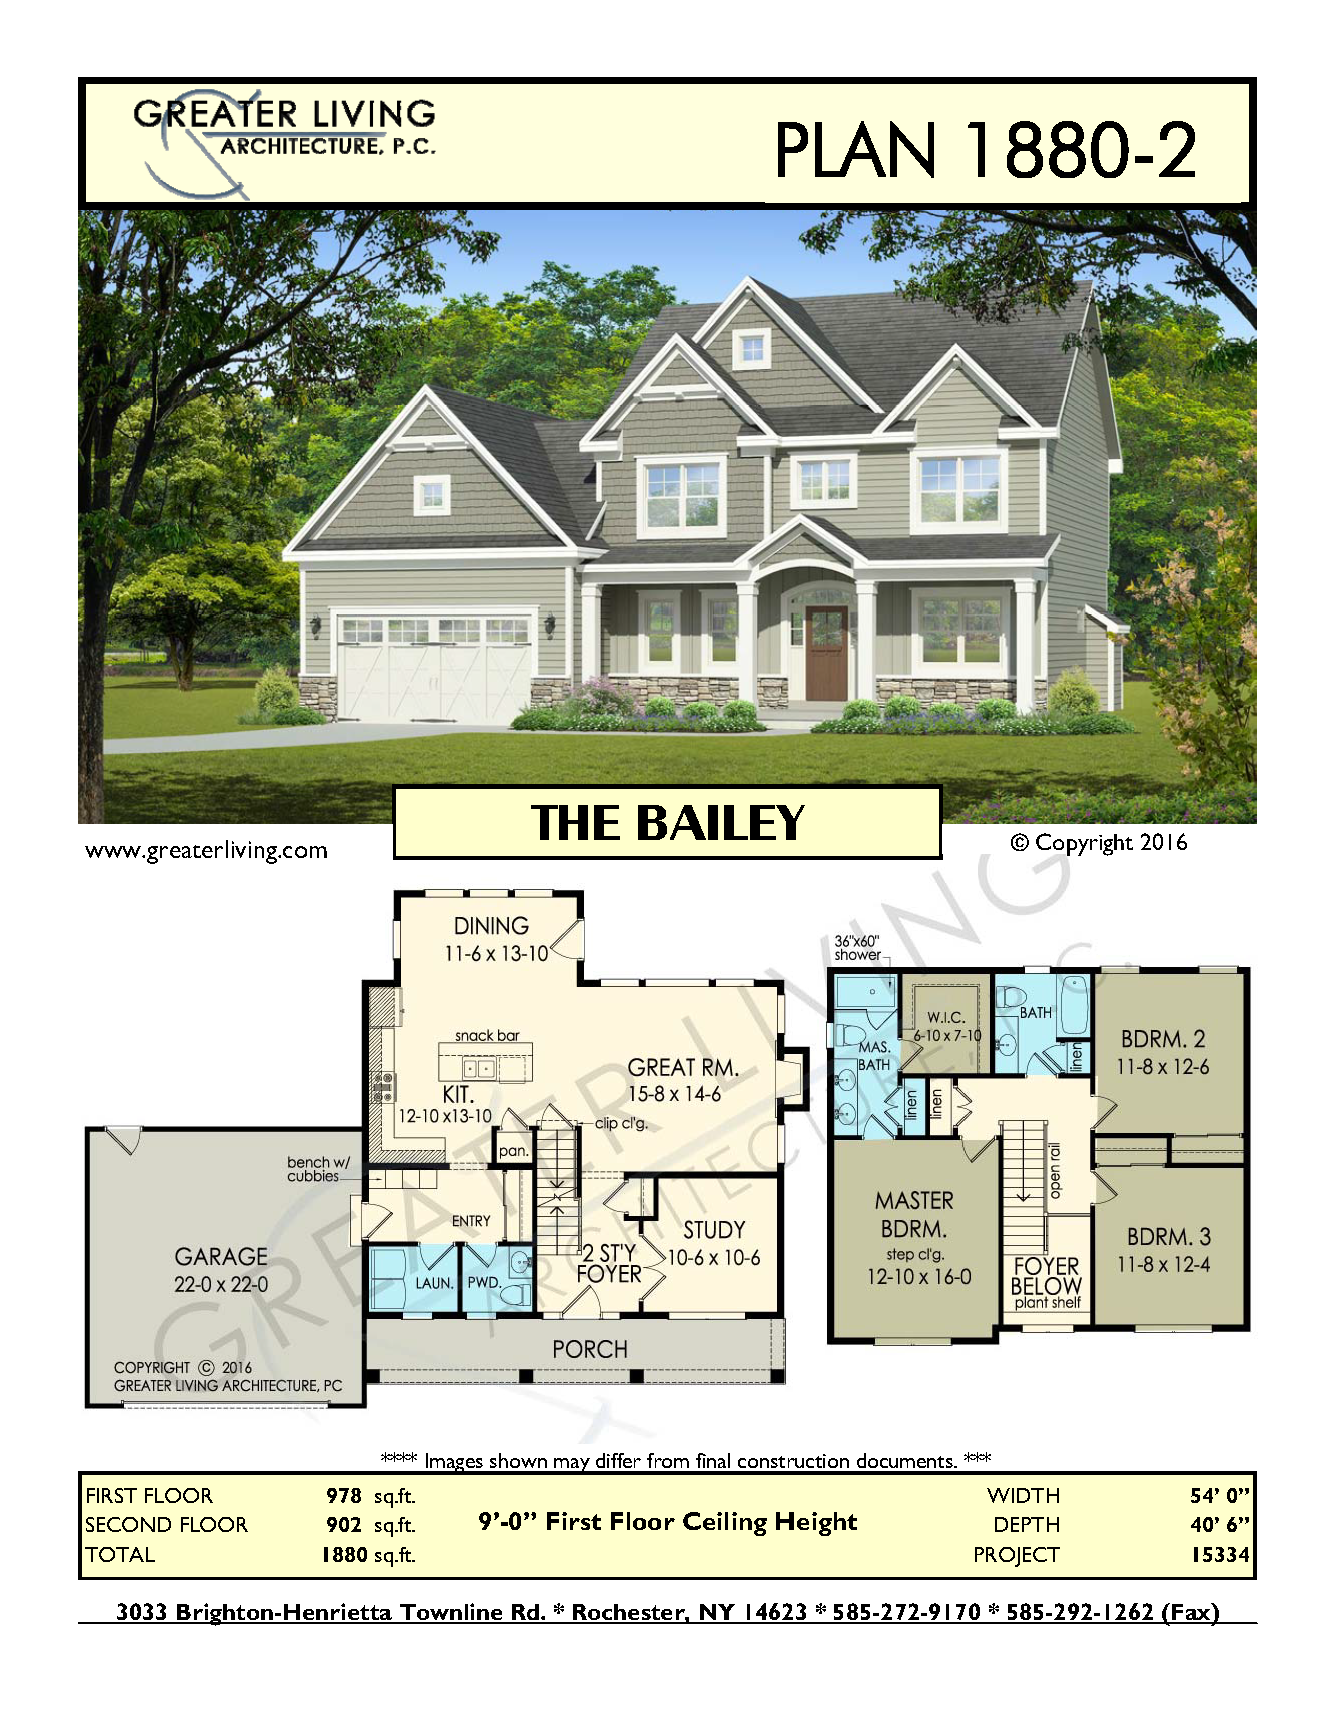 2 story house floor plans plan 1880 2 the bailey house plans 2 story house plan greater living architecture 1752